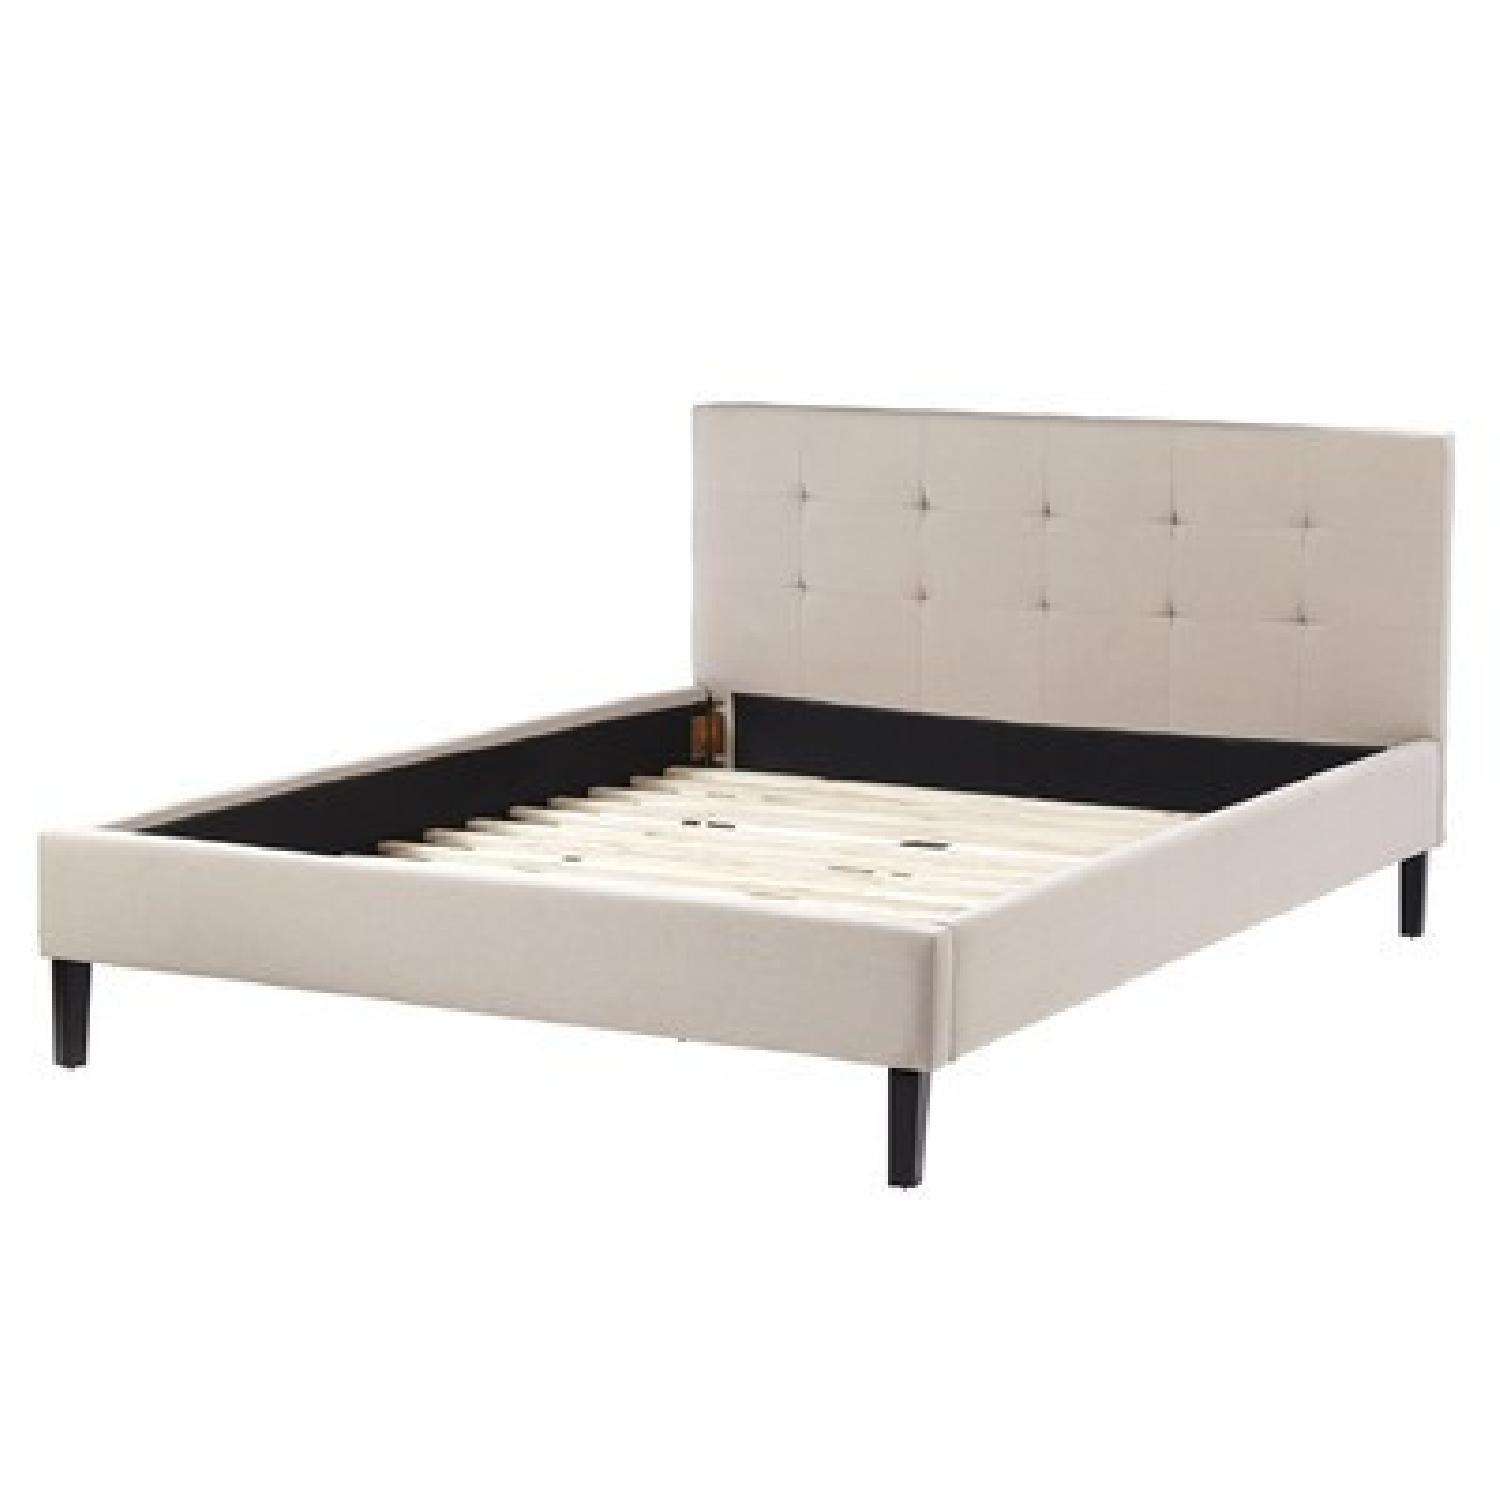 Queen Bed Frame w/ Linen Upholstered Tufted Headboard in Natural Oatmeal - image-2